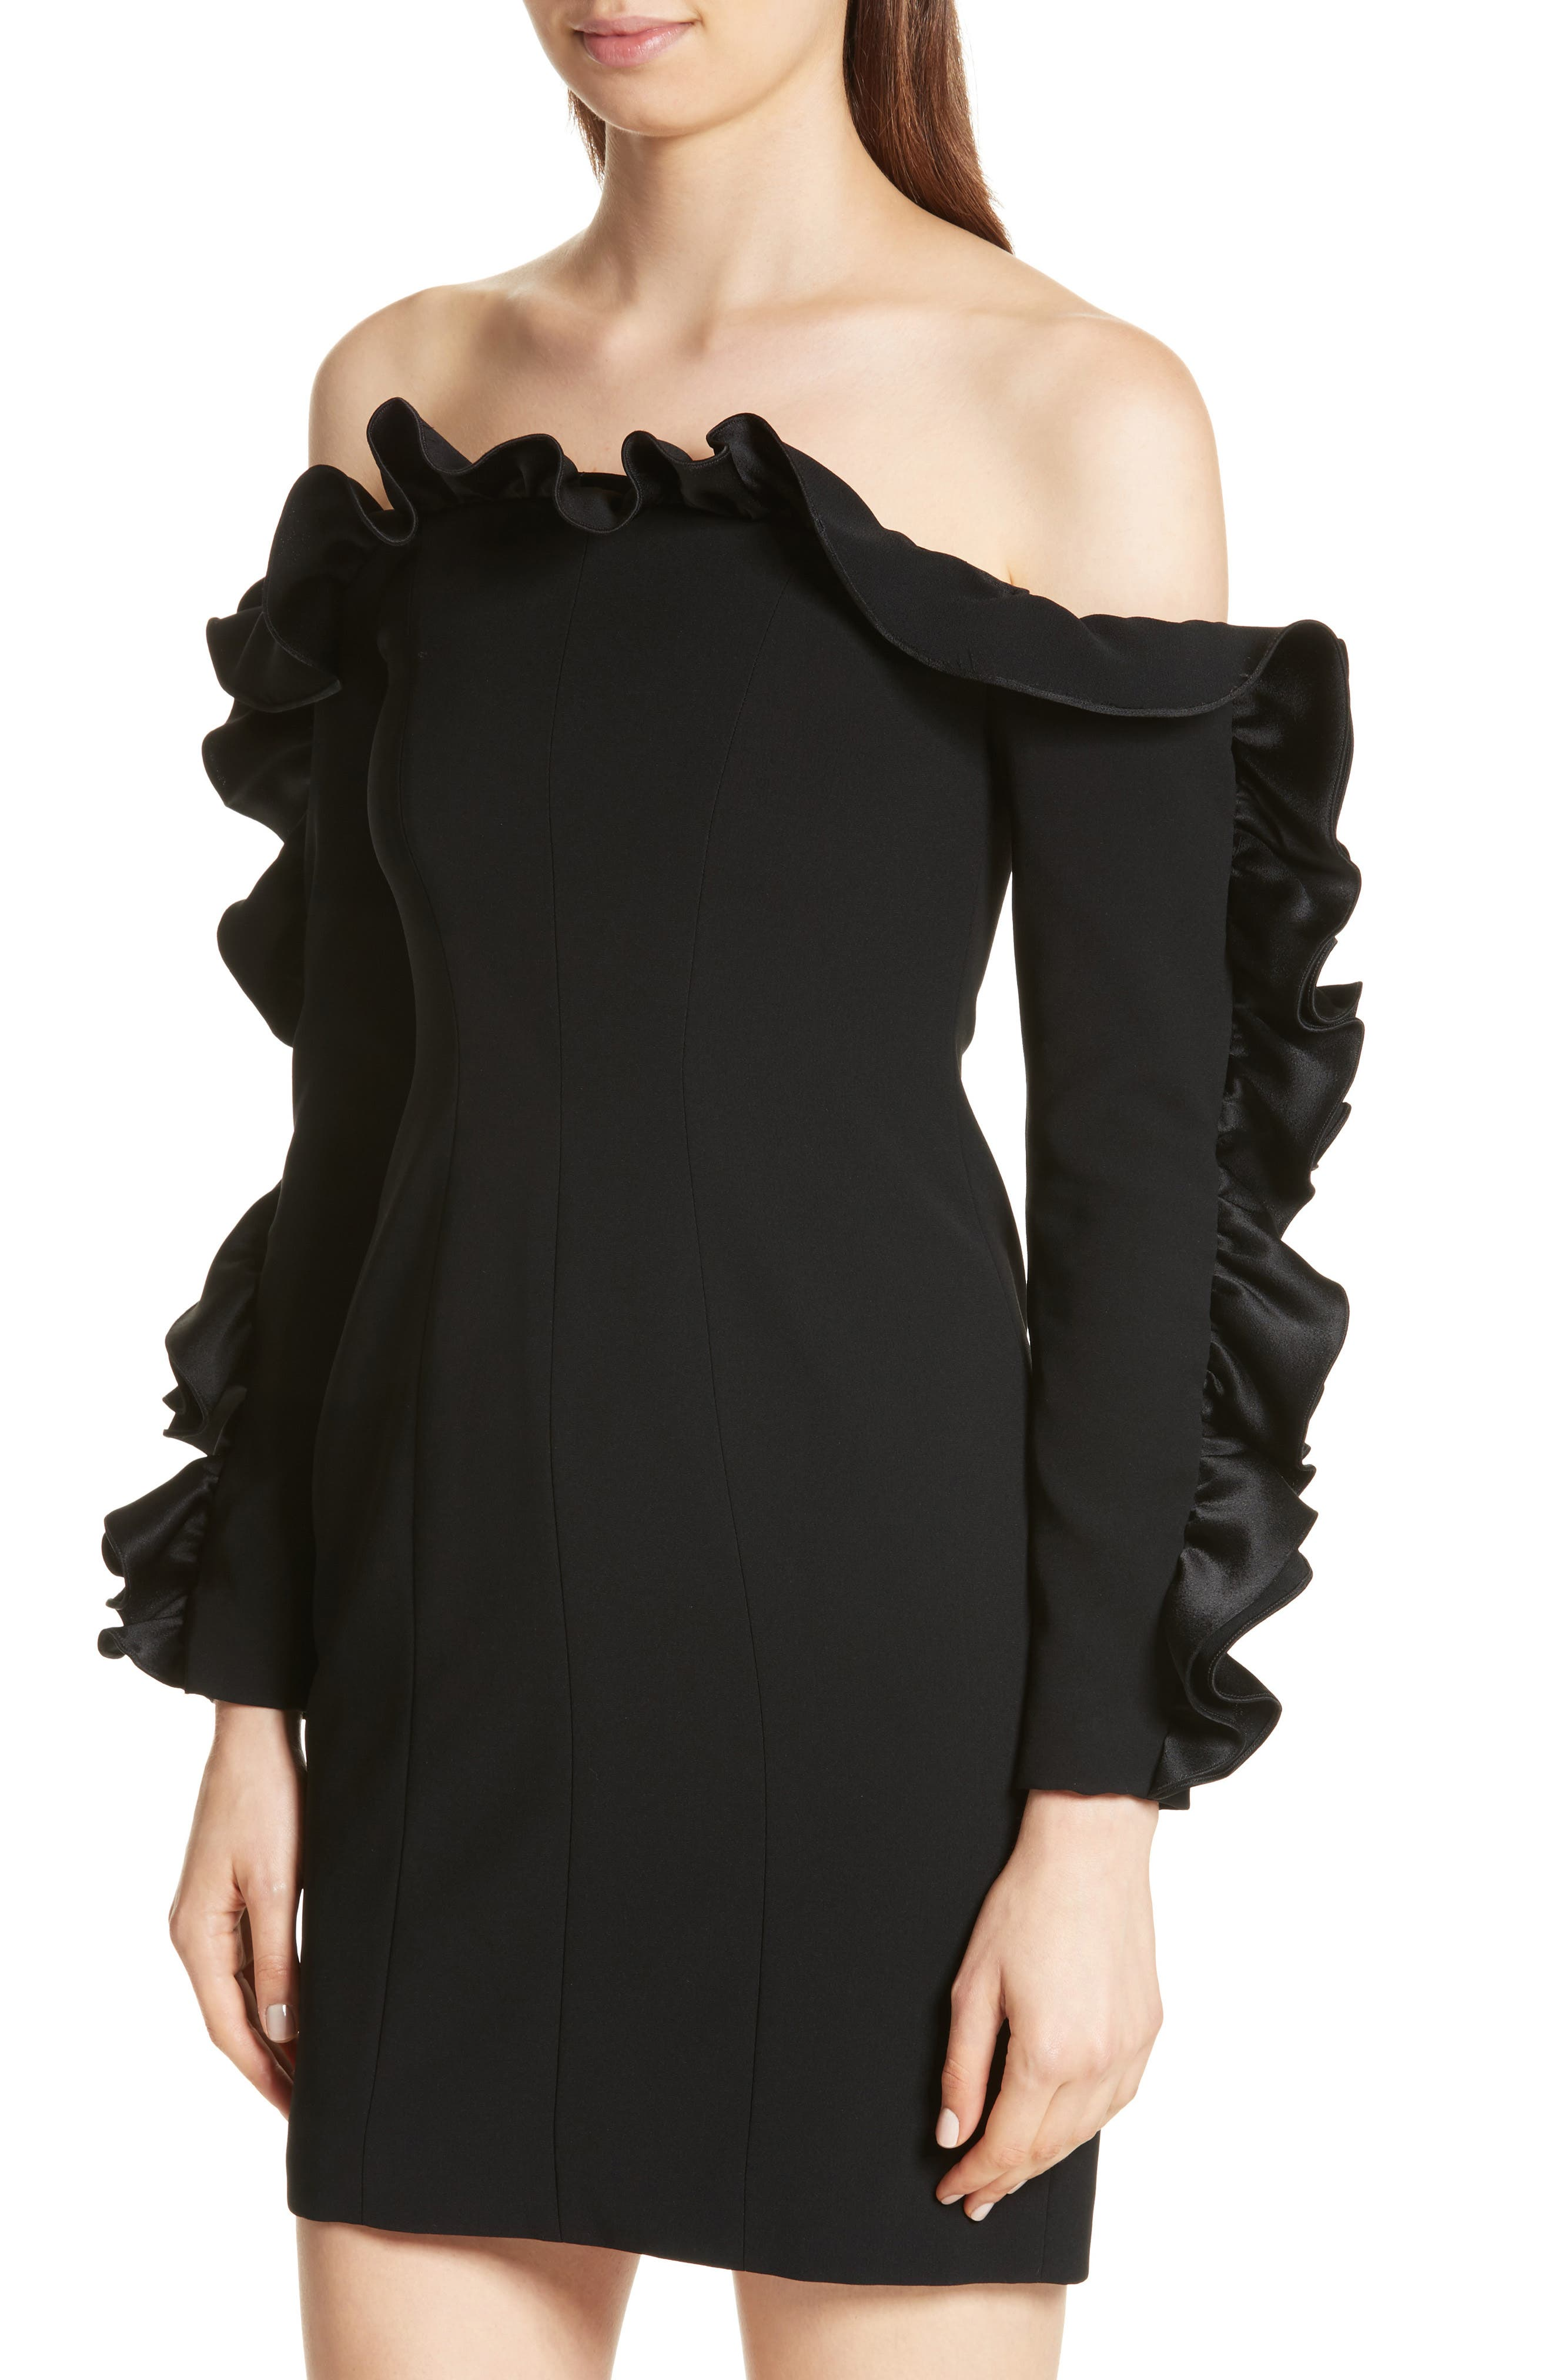 Rosemarie Ruffle Off the Shoulder Dress,                             Alternate thumbnail 4, color,                             001